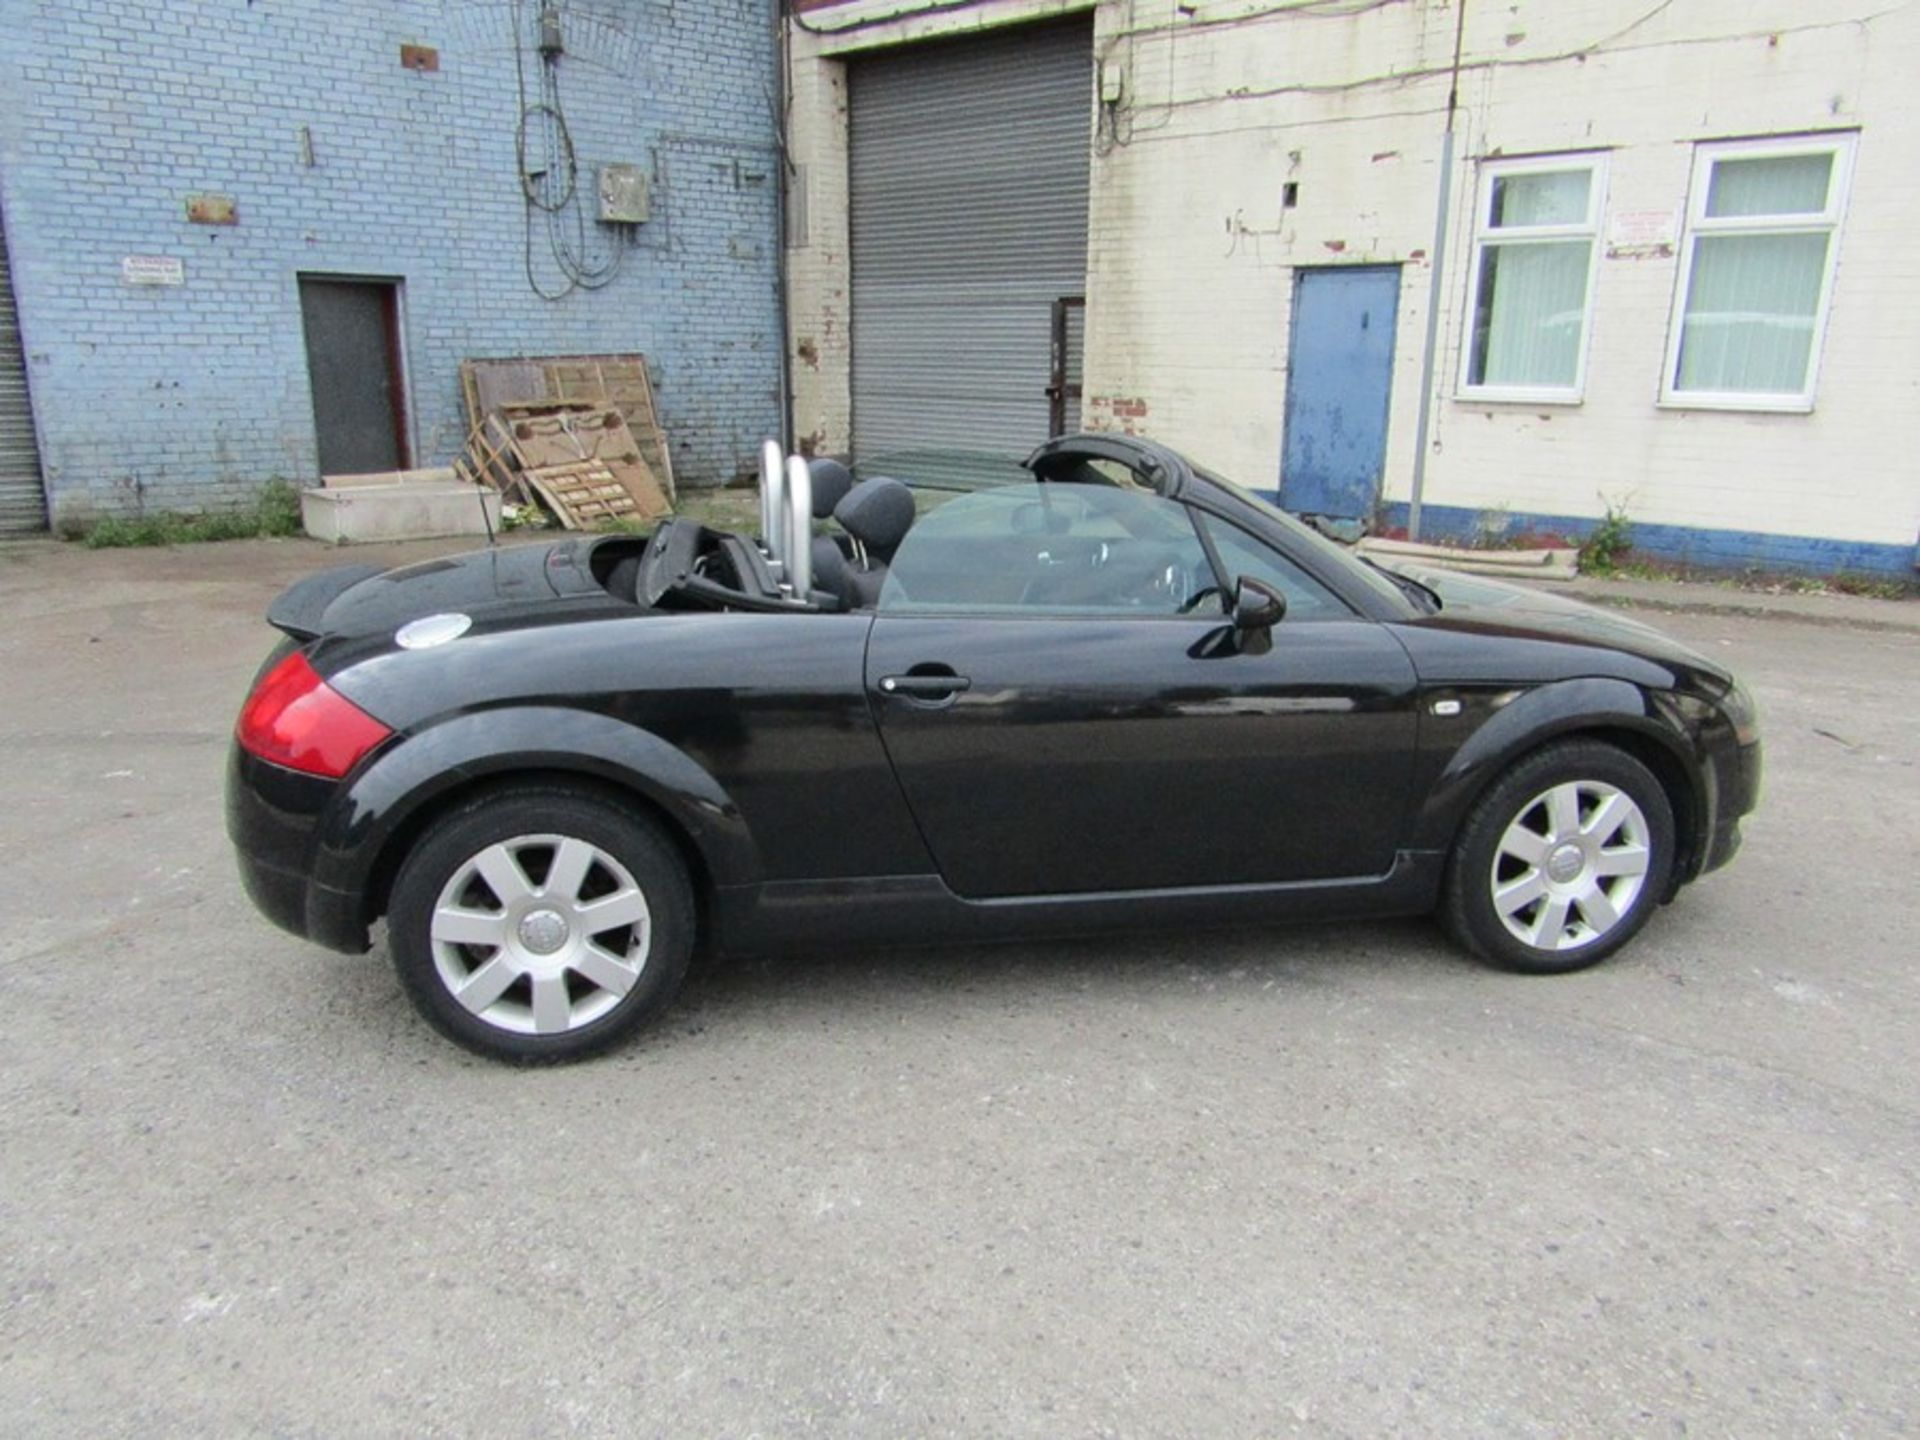 2005 Audi 1.8i Convertible roadster, 131,608 Miles (unchecked) MOT until 01/06/2021, Has part - Image 13 of 16